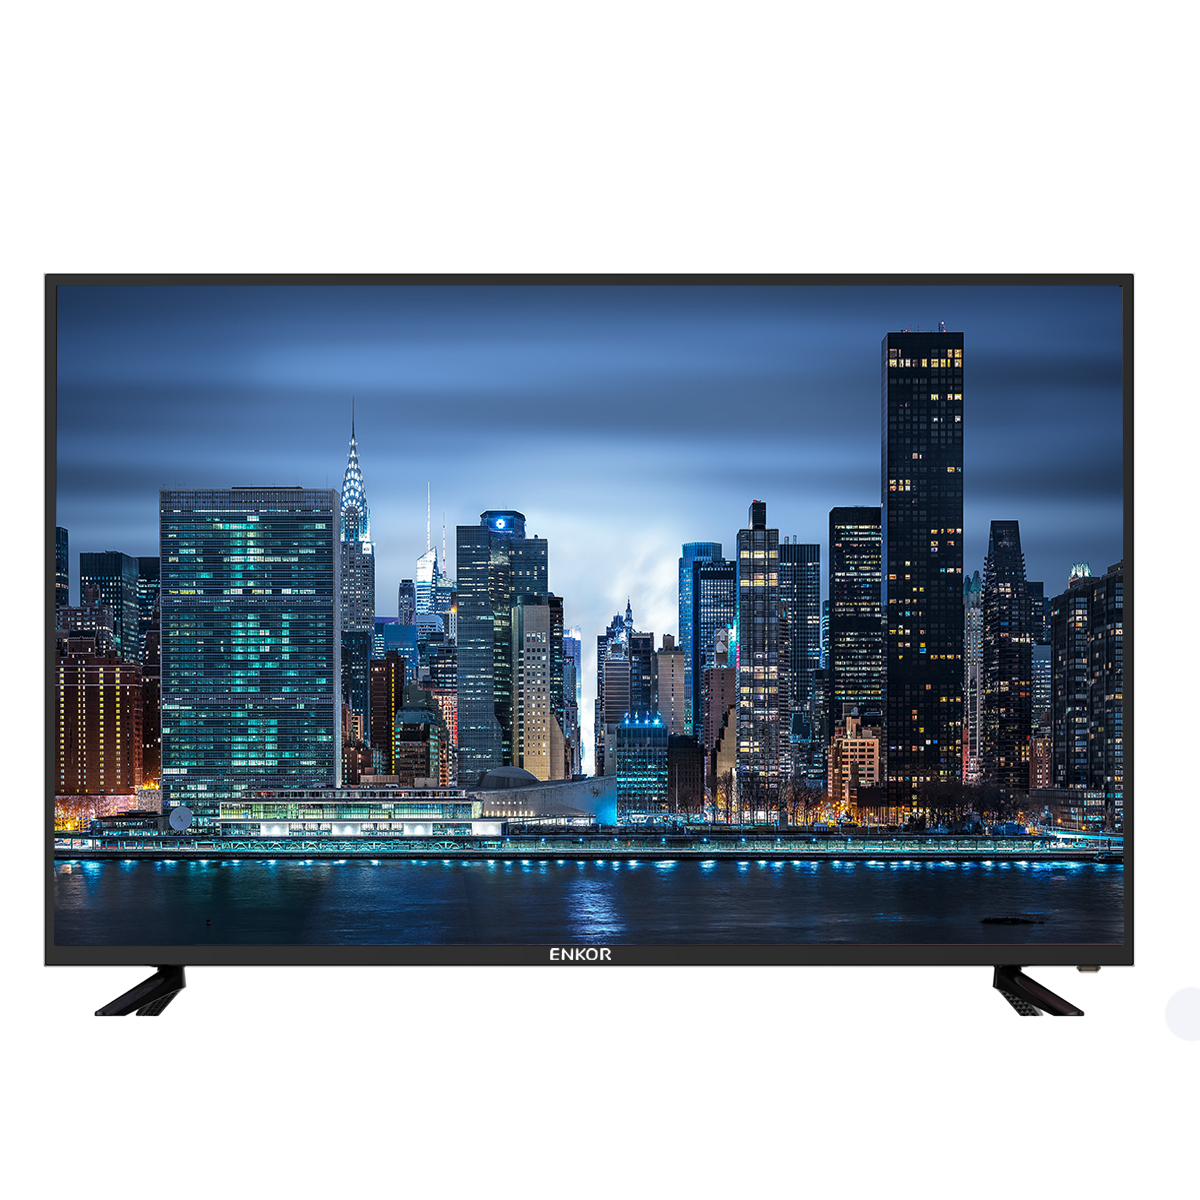 Goedkope lage Fabriek prijs China Digitale Flat Screen HD LED TV Groothandel TV sets Fabrikant HD FHD LED TV 32 40 43 50 55 inch